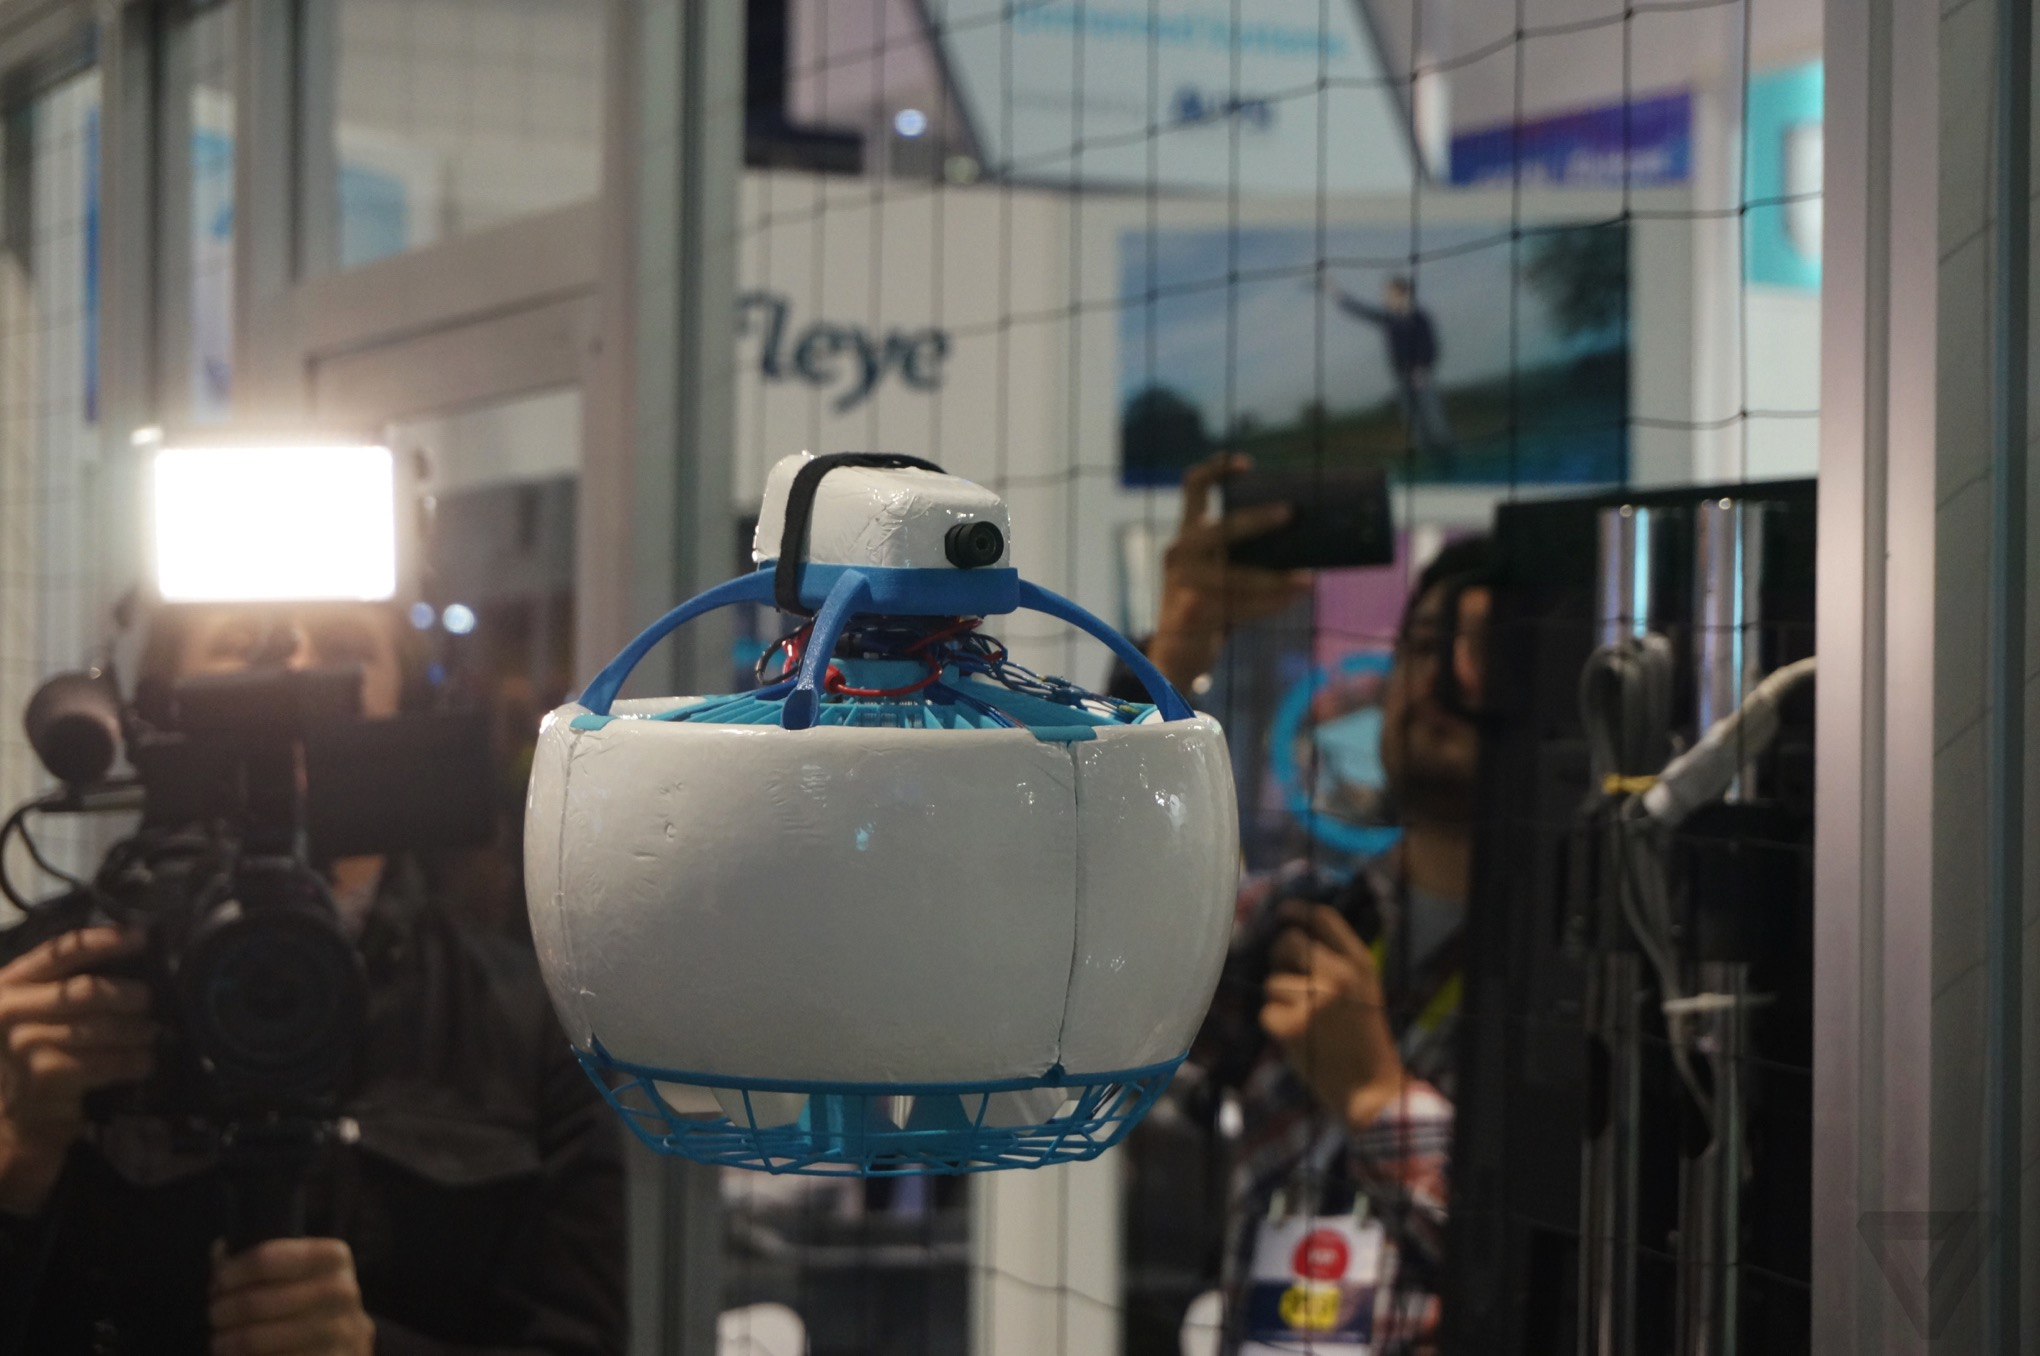 This Soccer Ball Shaped Drone Can T Chop Your Fingers Off